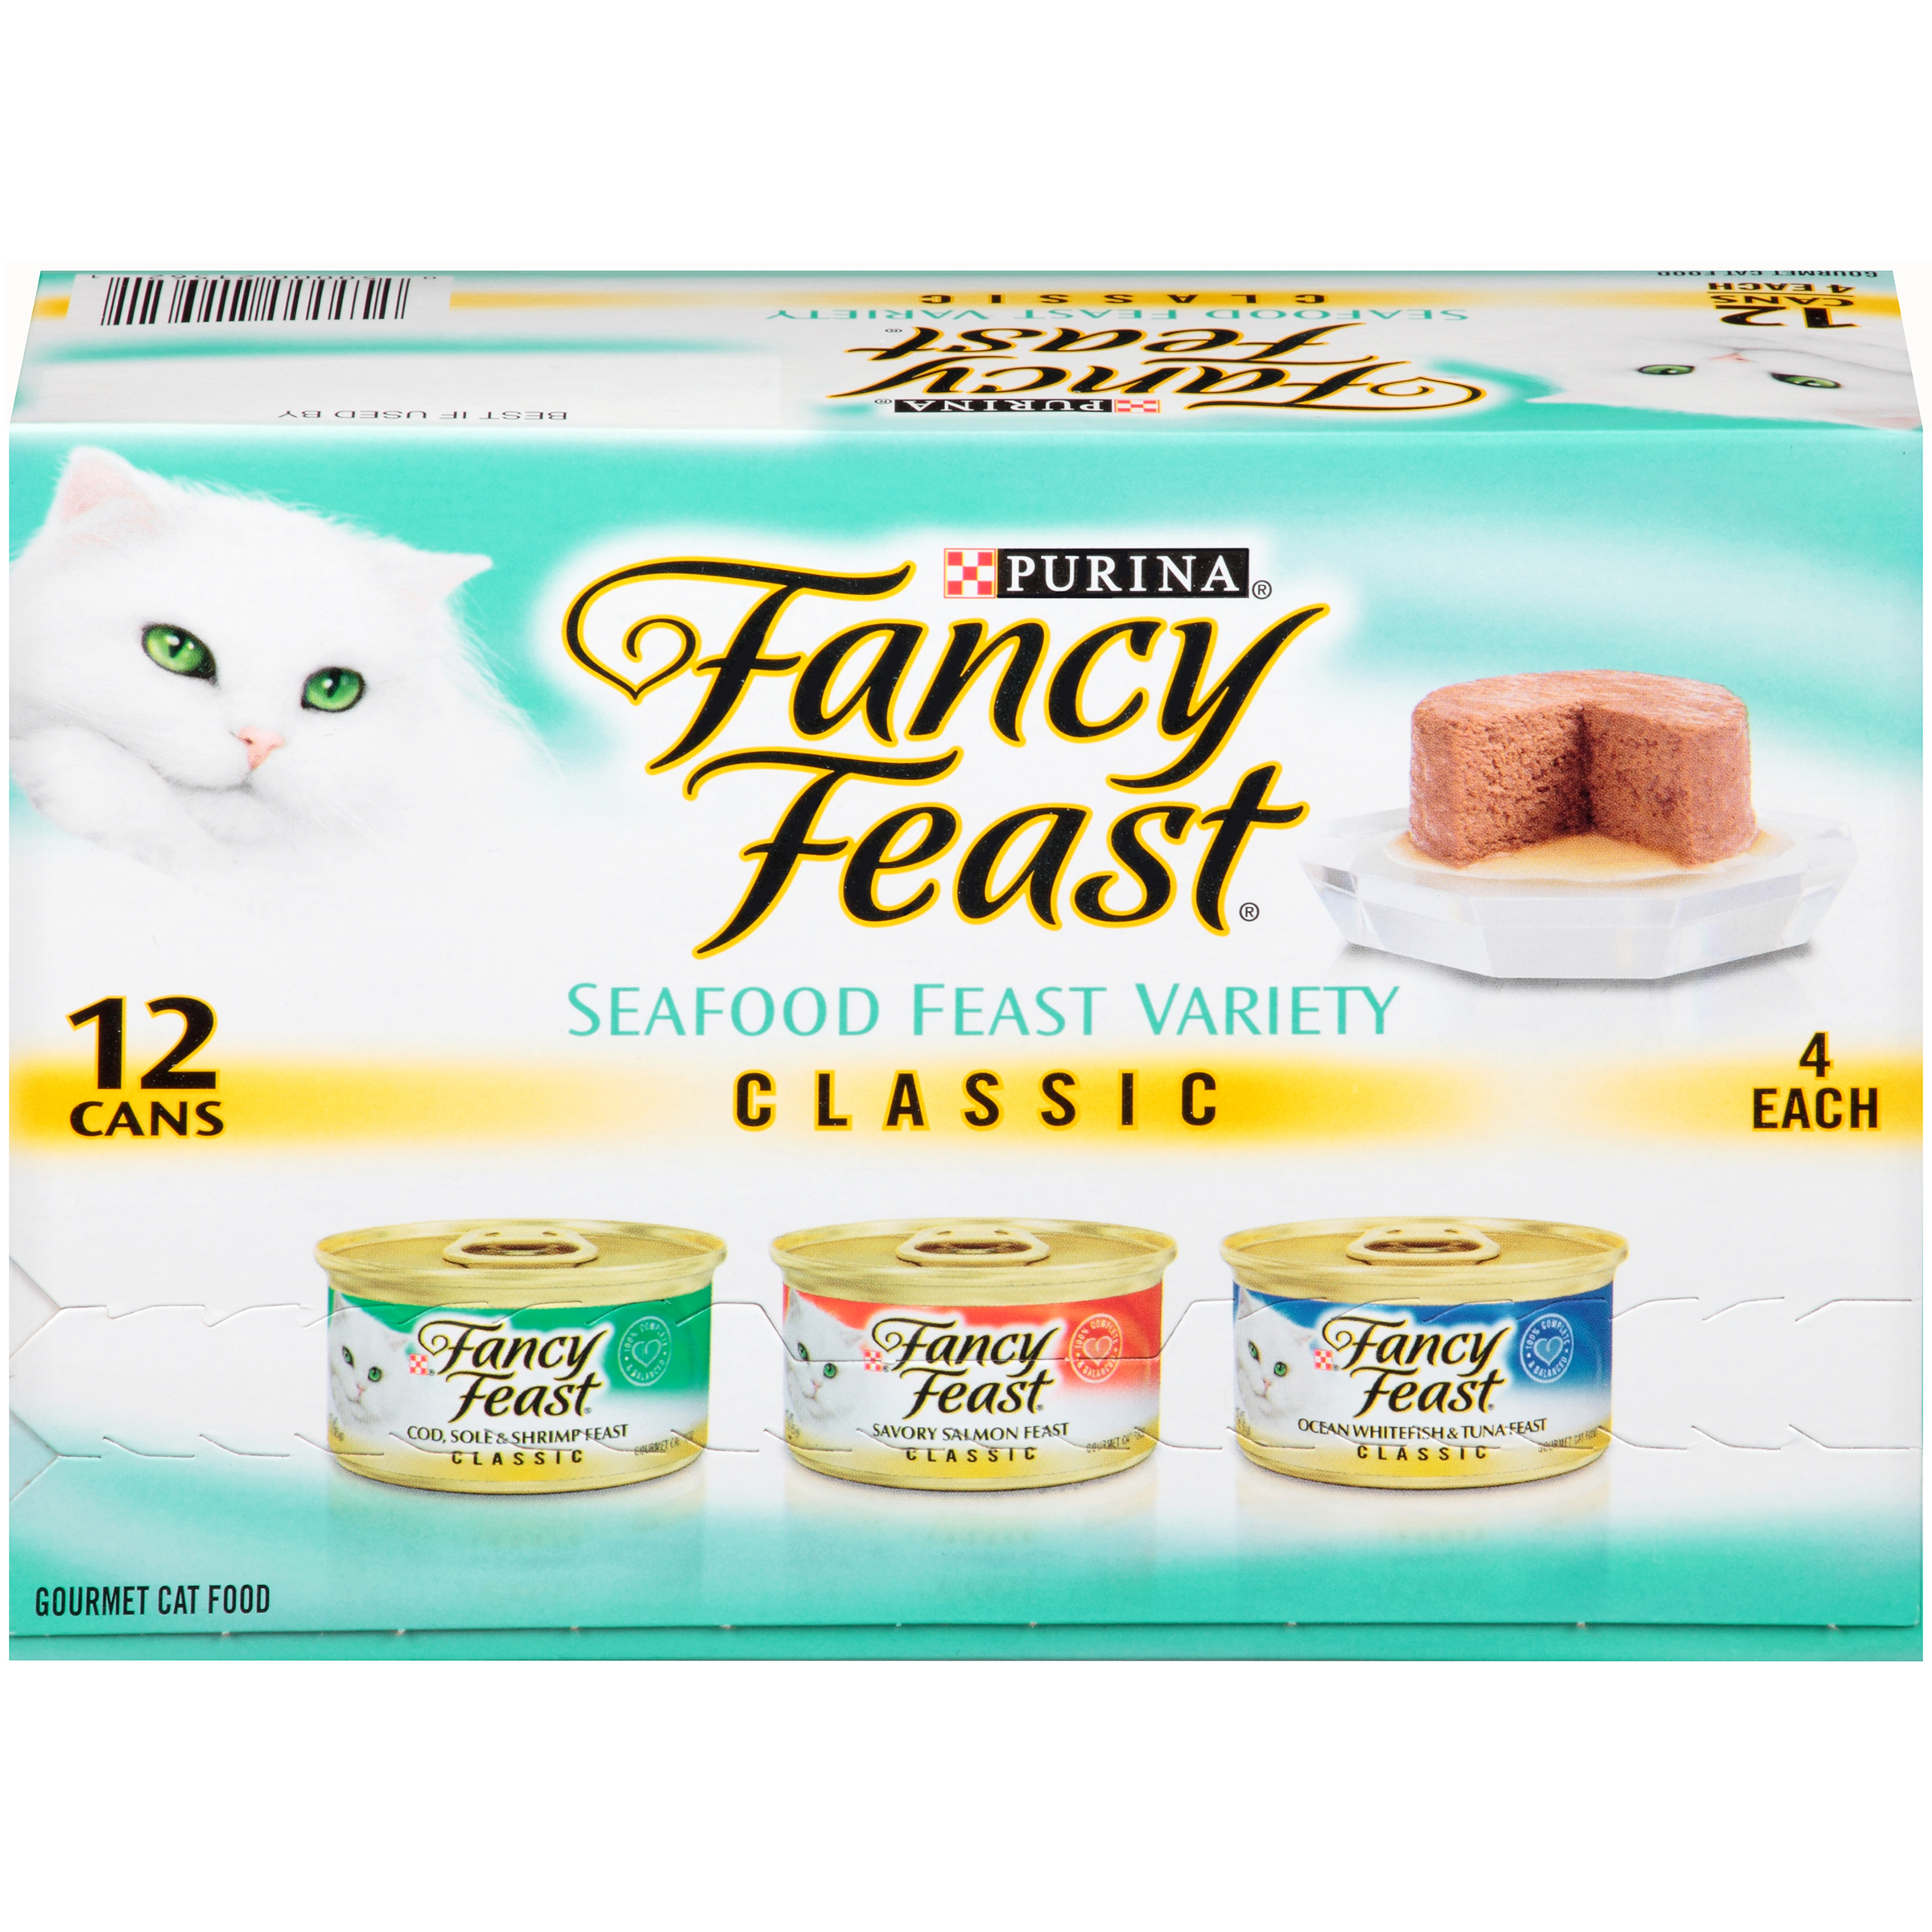 Purina Fancy Feast Classic Pat?? Seafood Feast Variety Cat Food 12-3 oz. Cans